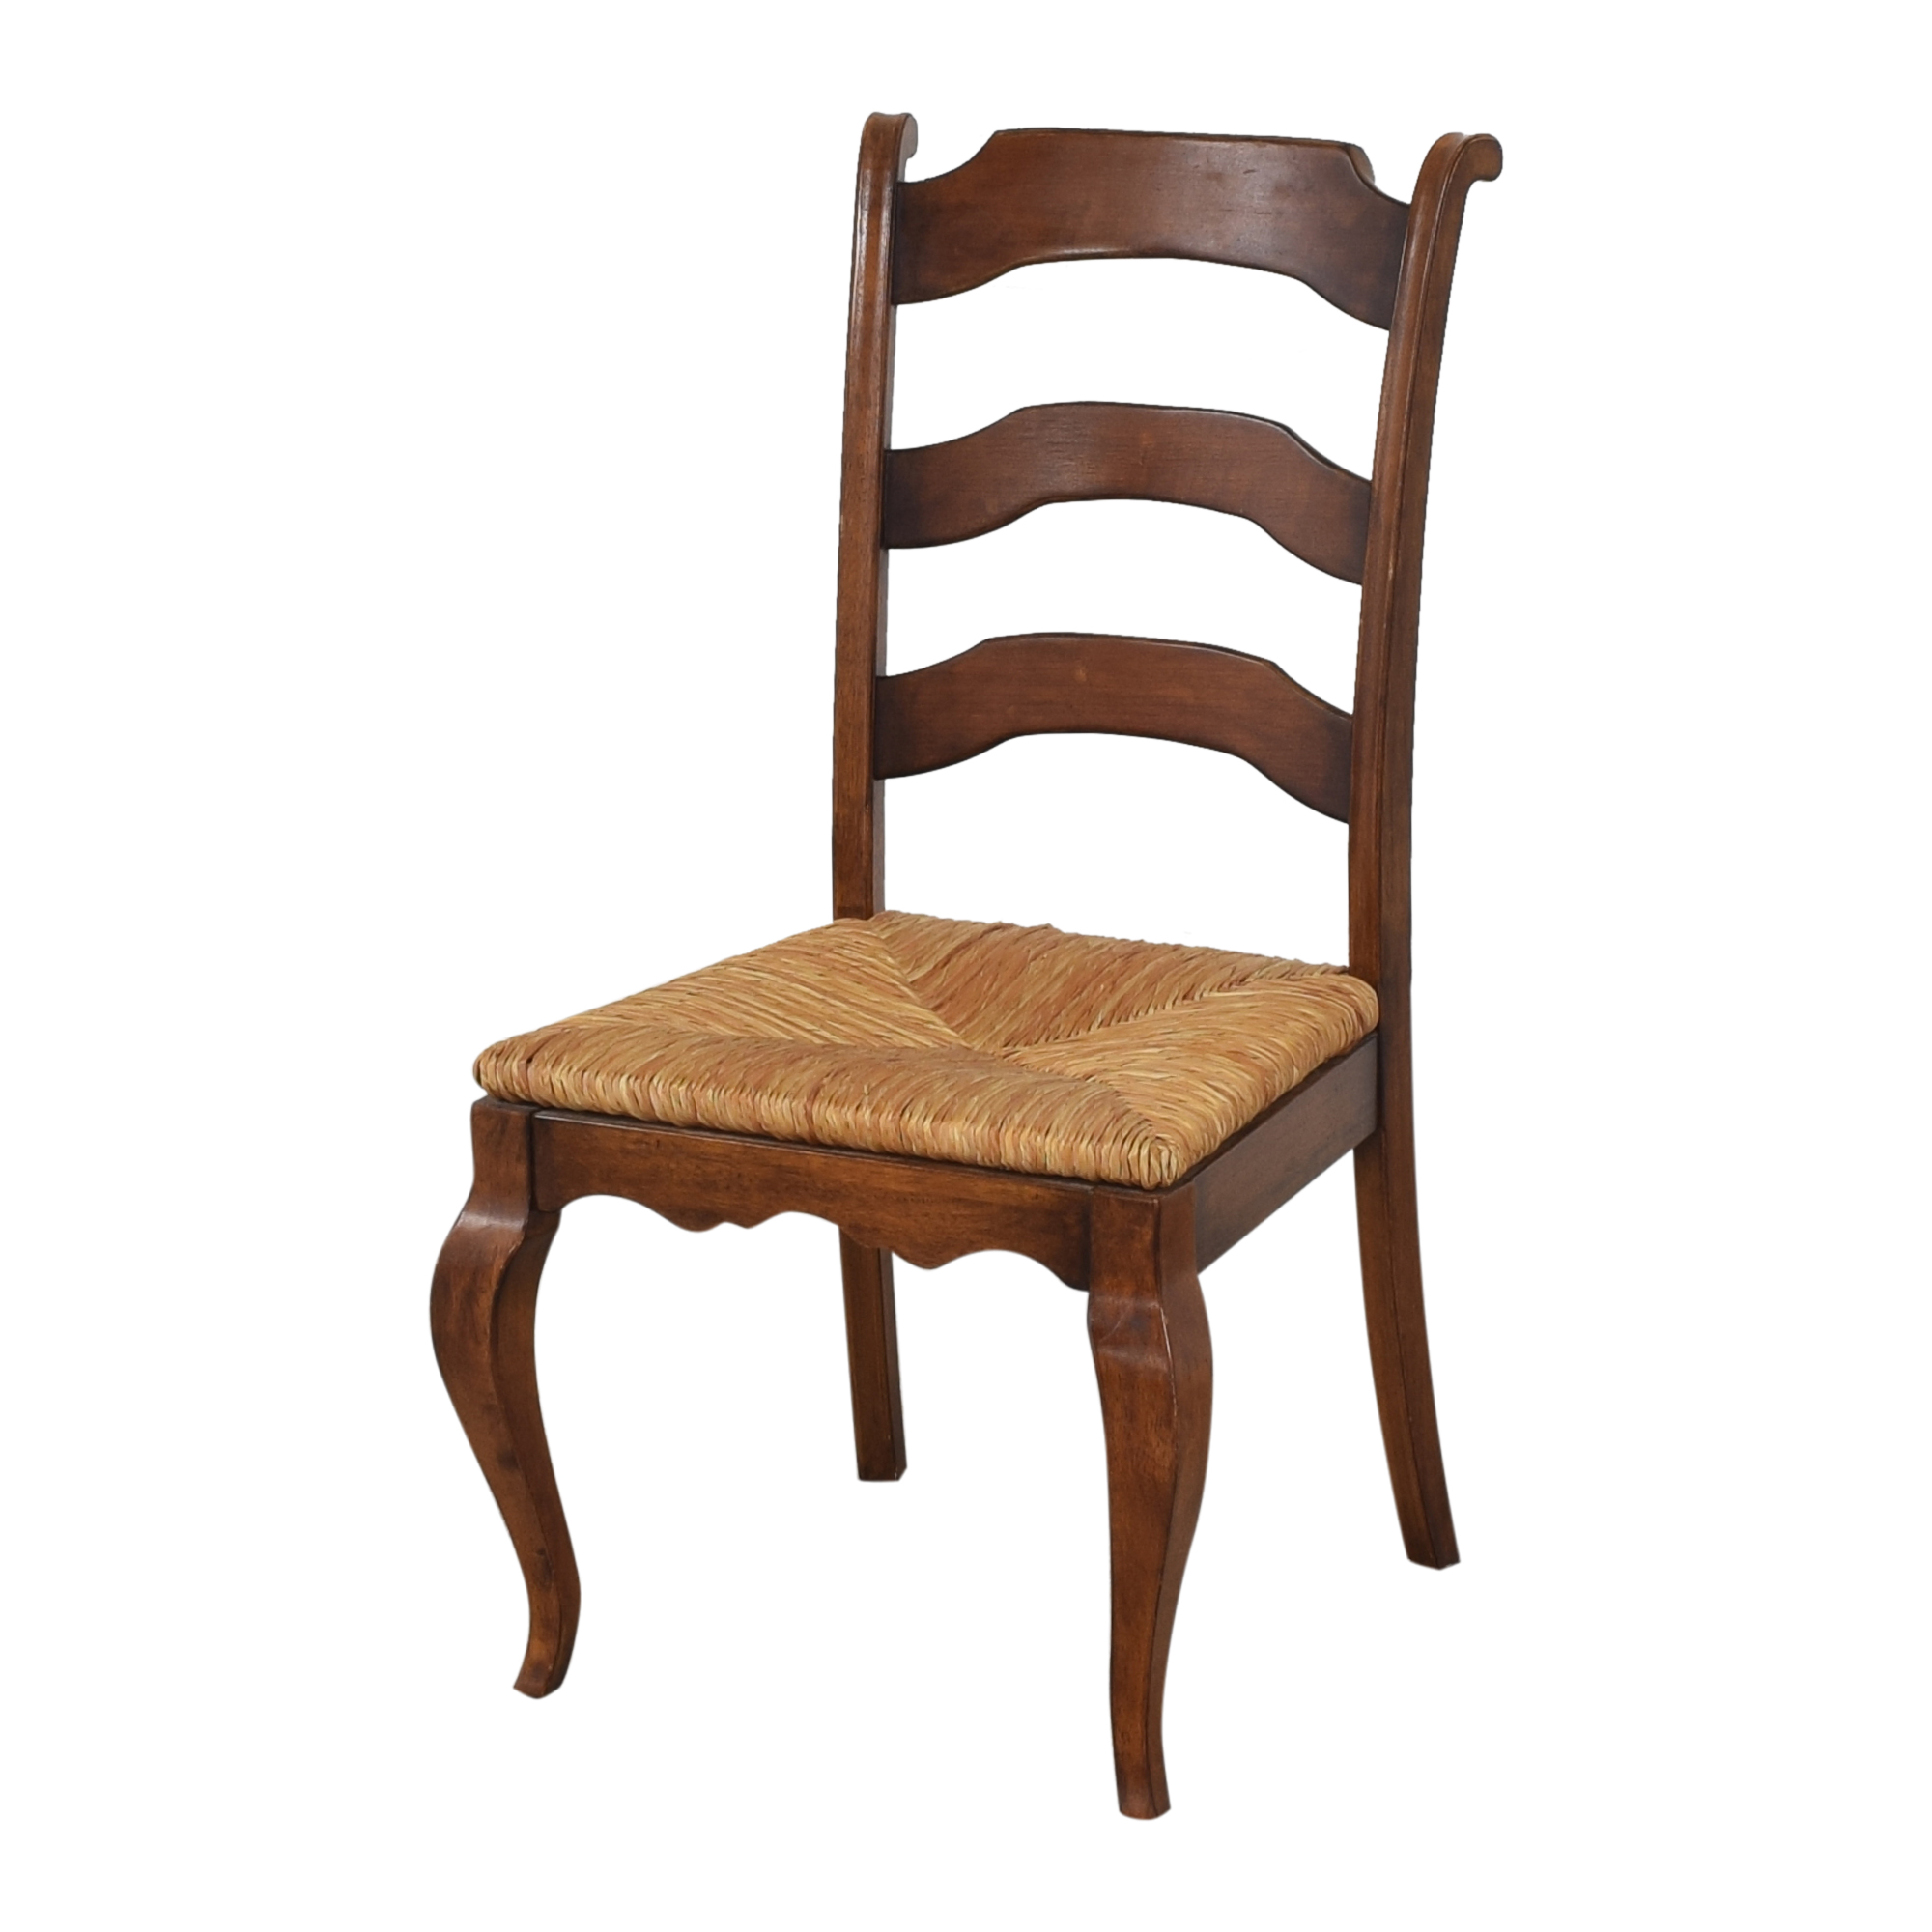 buy Hooker Furniture Hooker Furniture Woven Seat Dining Chairs online